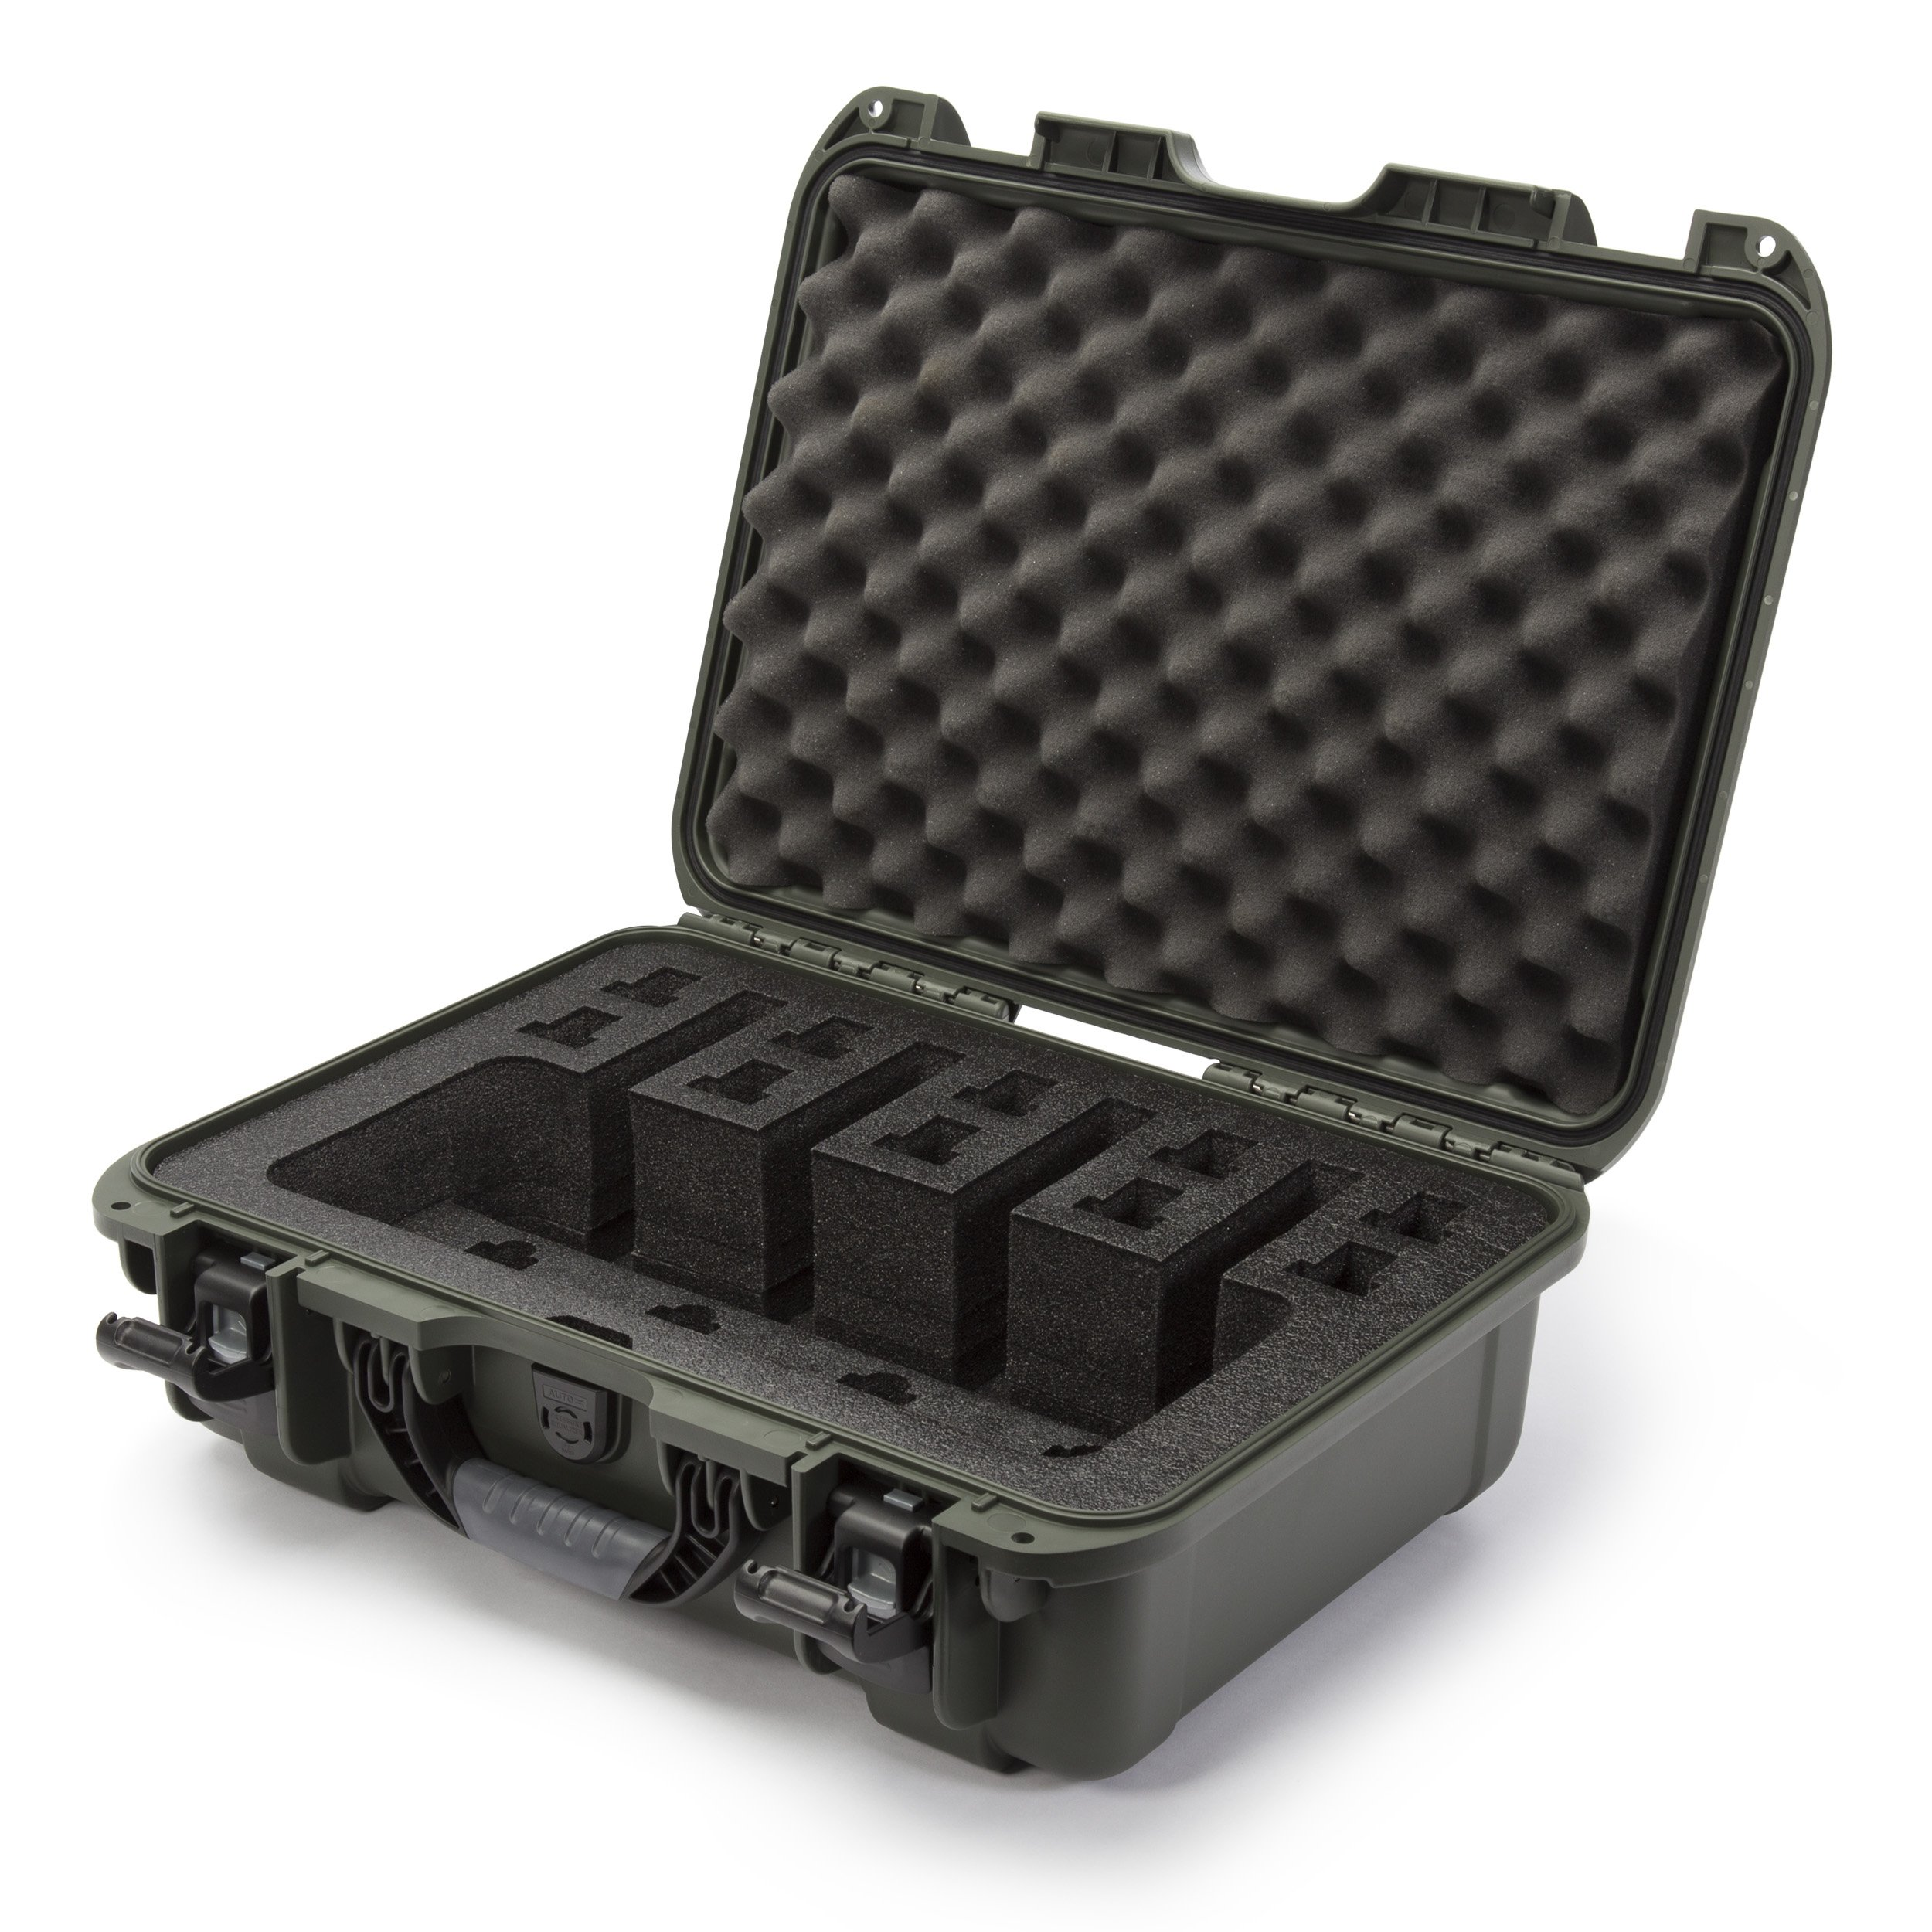 Nanuk 925 Waterproof Professional Gun Case, Military Approved with Custom Foam Insert for 4UP - Olive by Nanuk